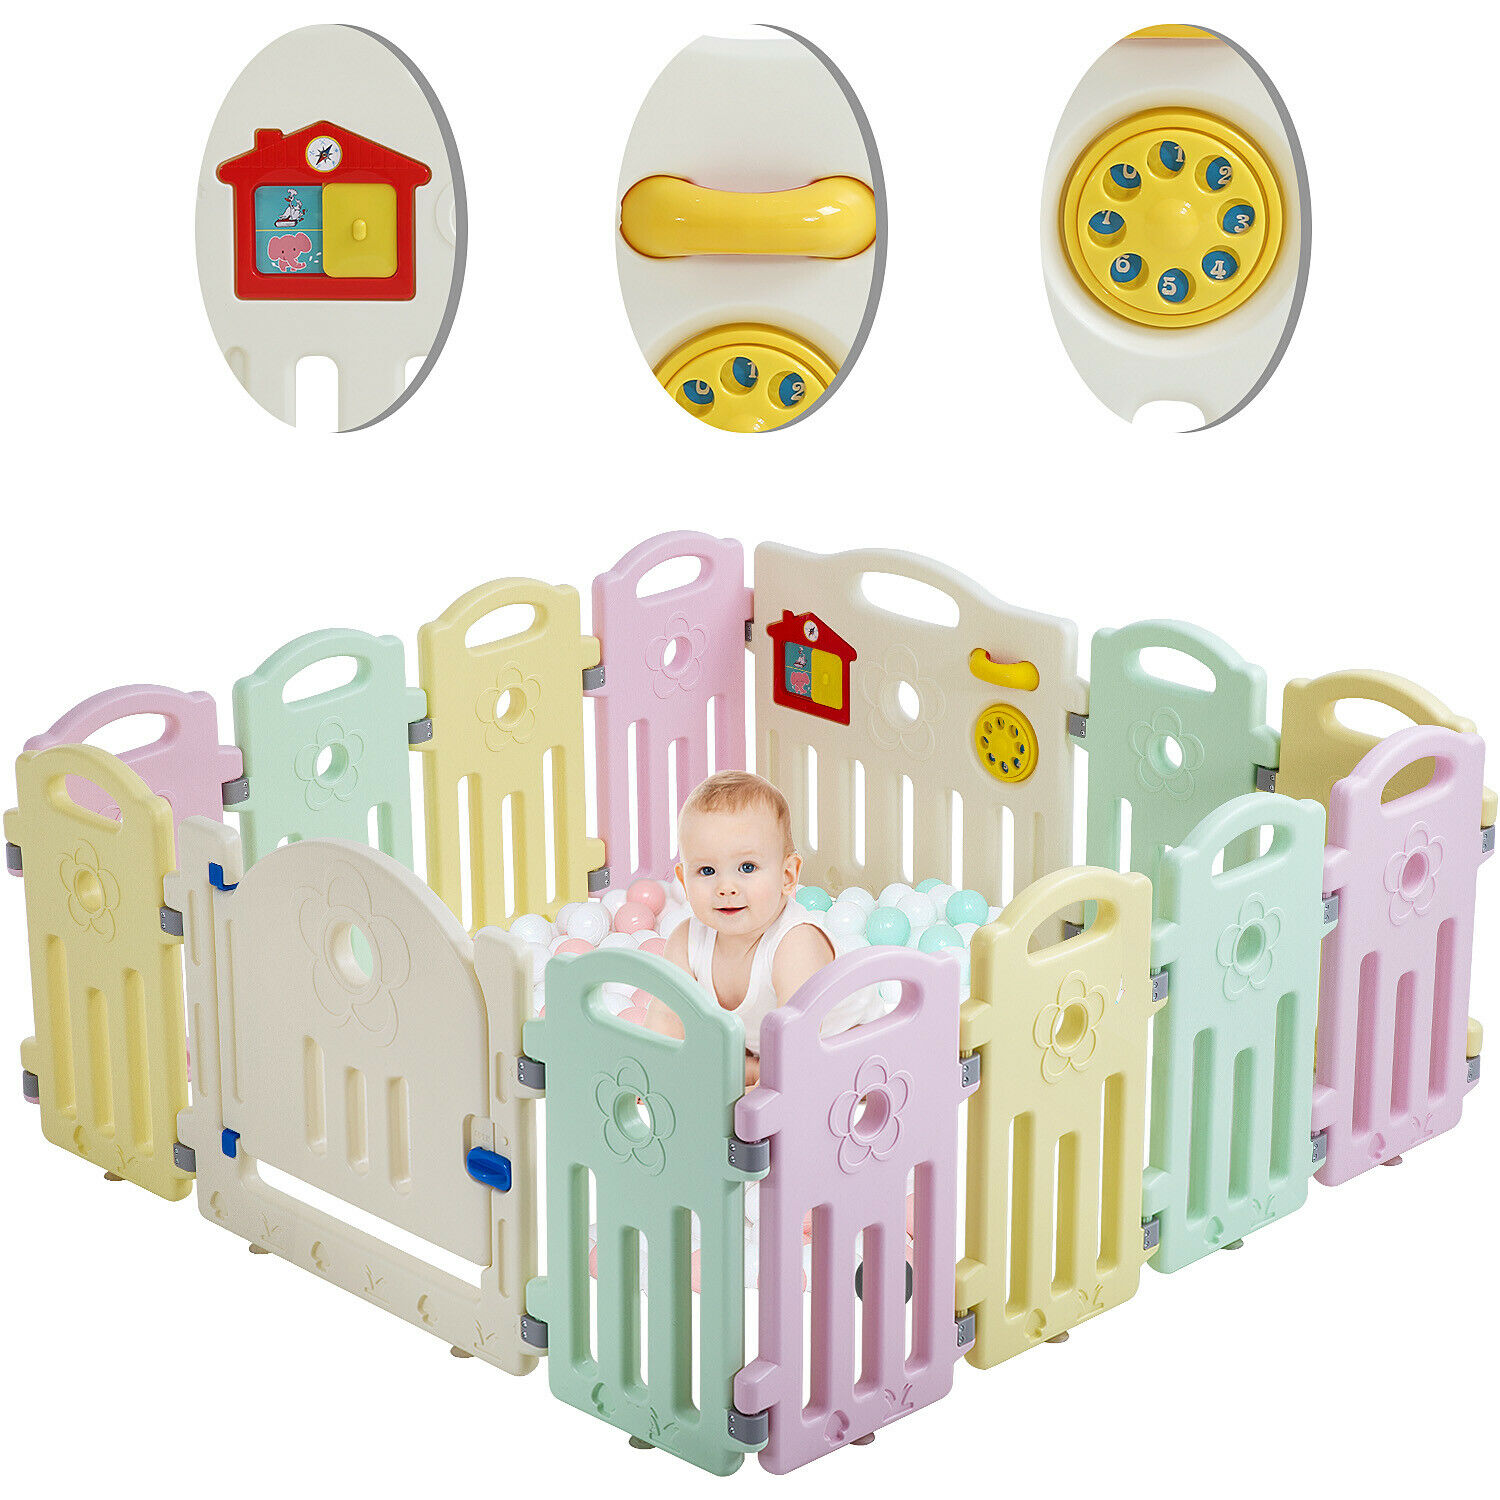 Baby Playpen Playard 14 Panels Safety Kids Indoor Baby Fence W/ Activity Board | eBay